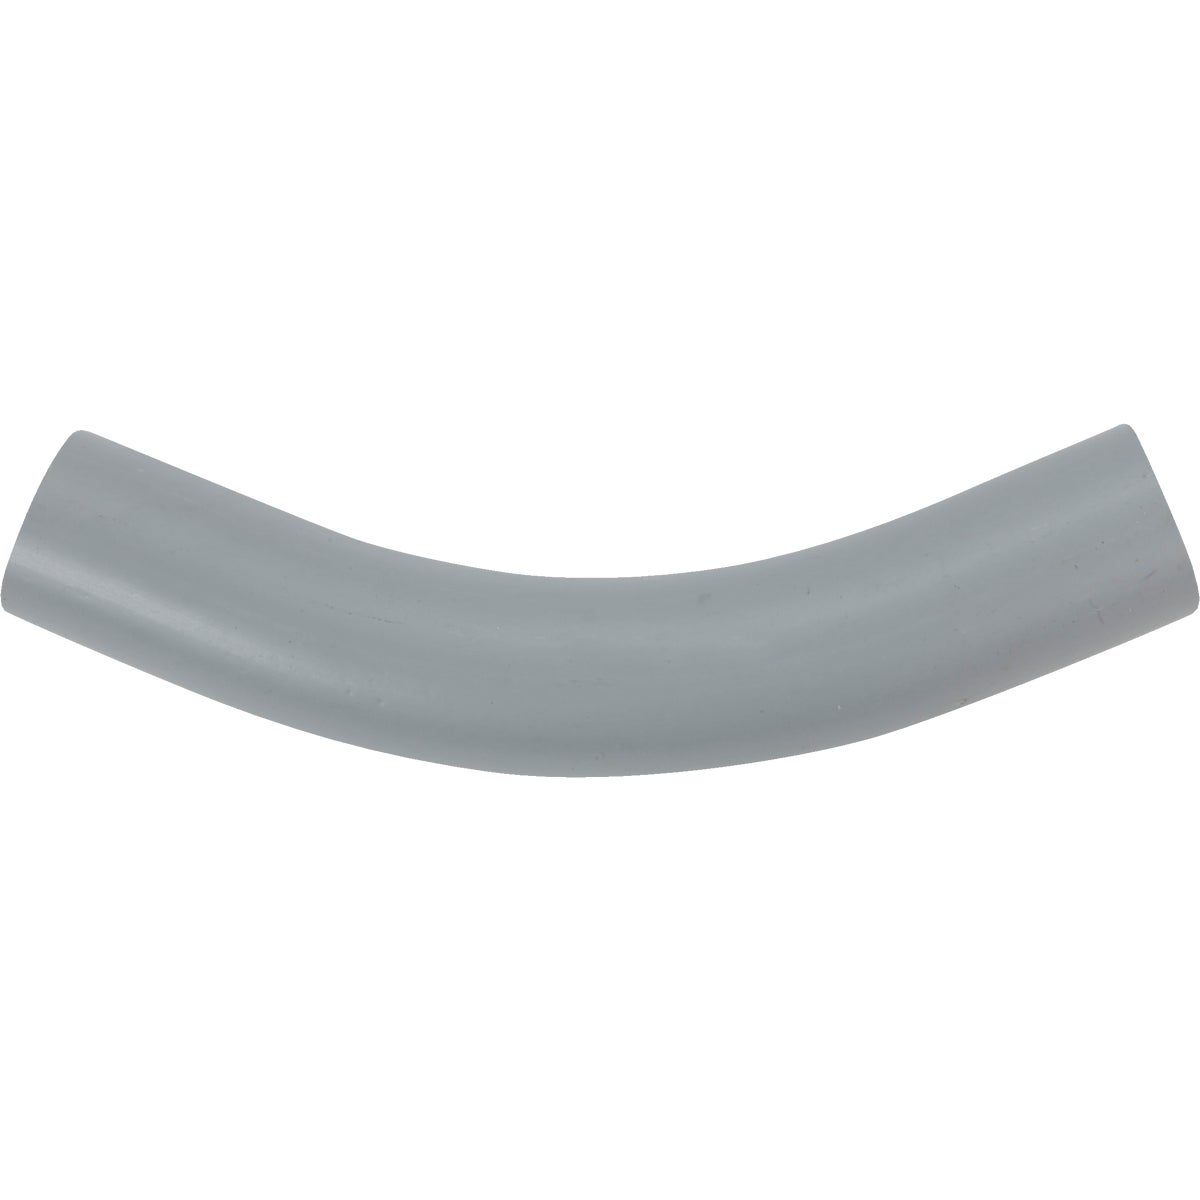 "1-1/2"" PVC ELBOW - UA7AHRCTN by Thomas & Betts"